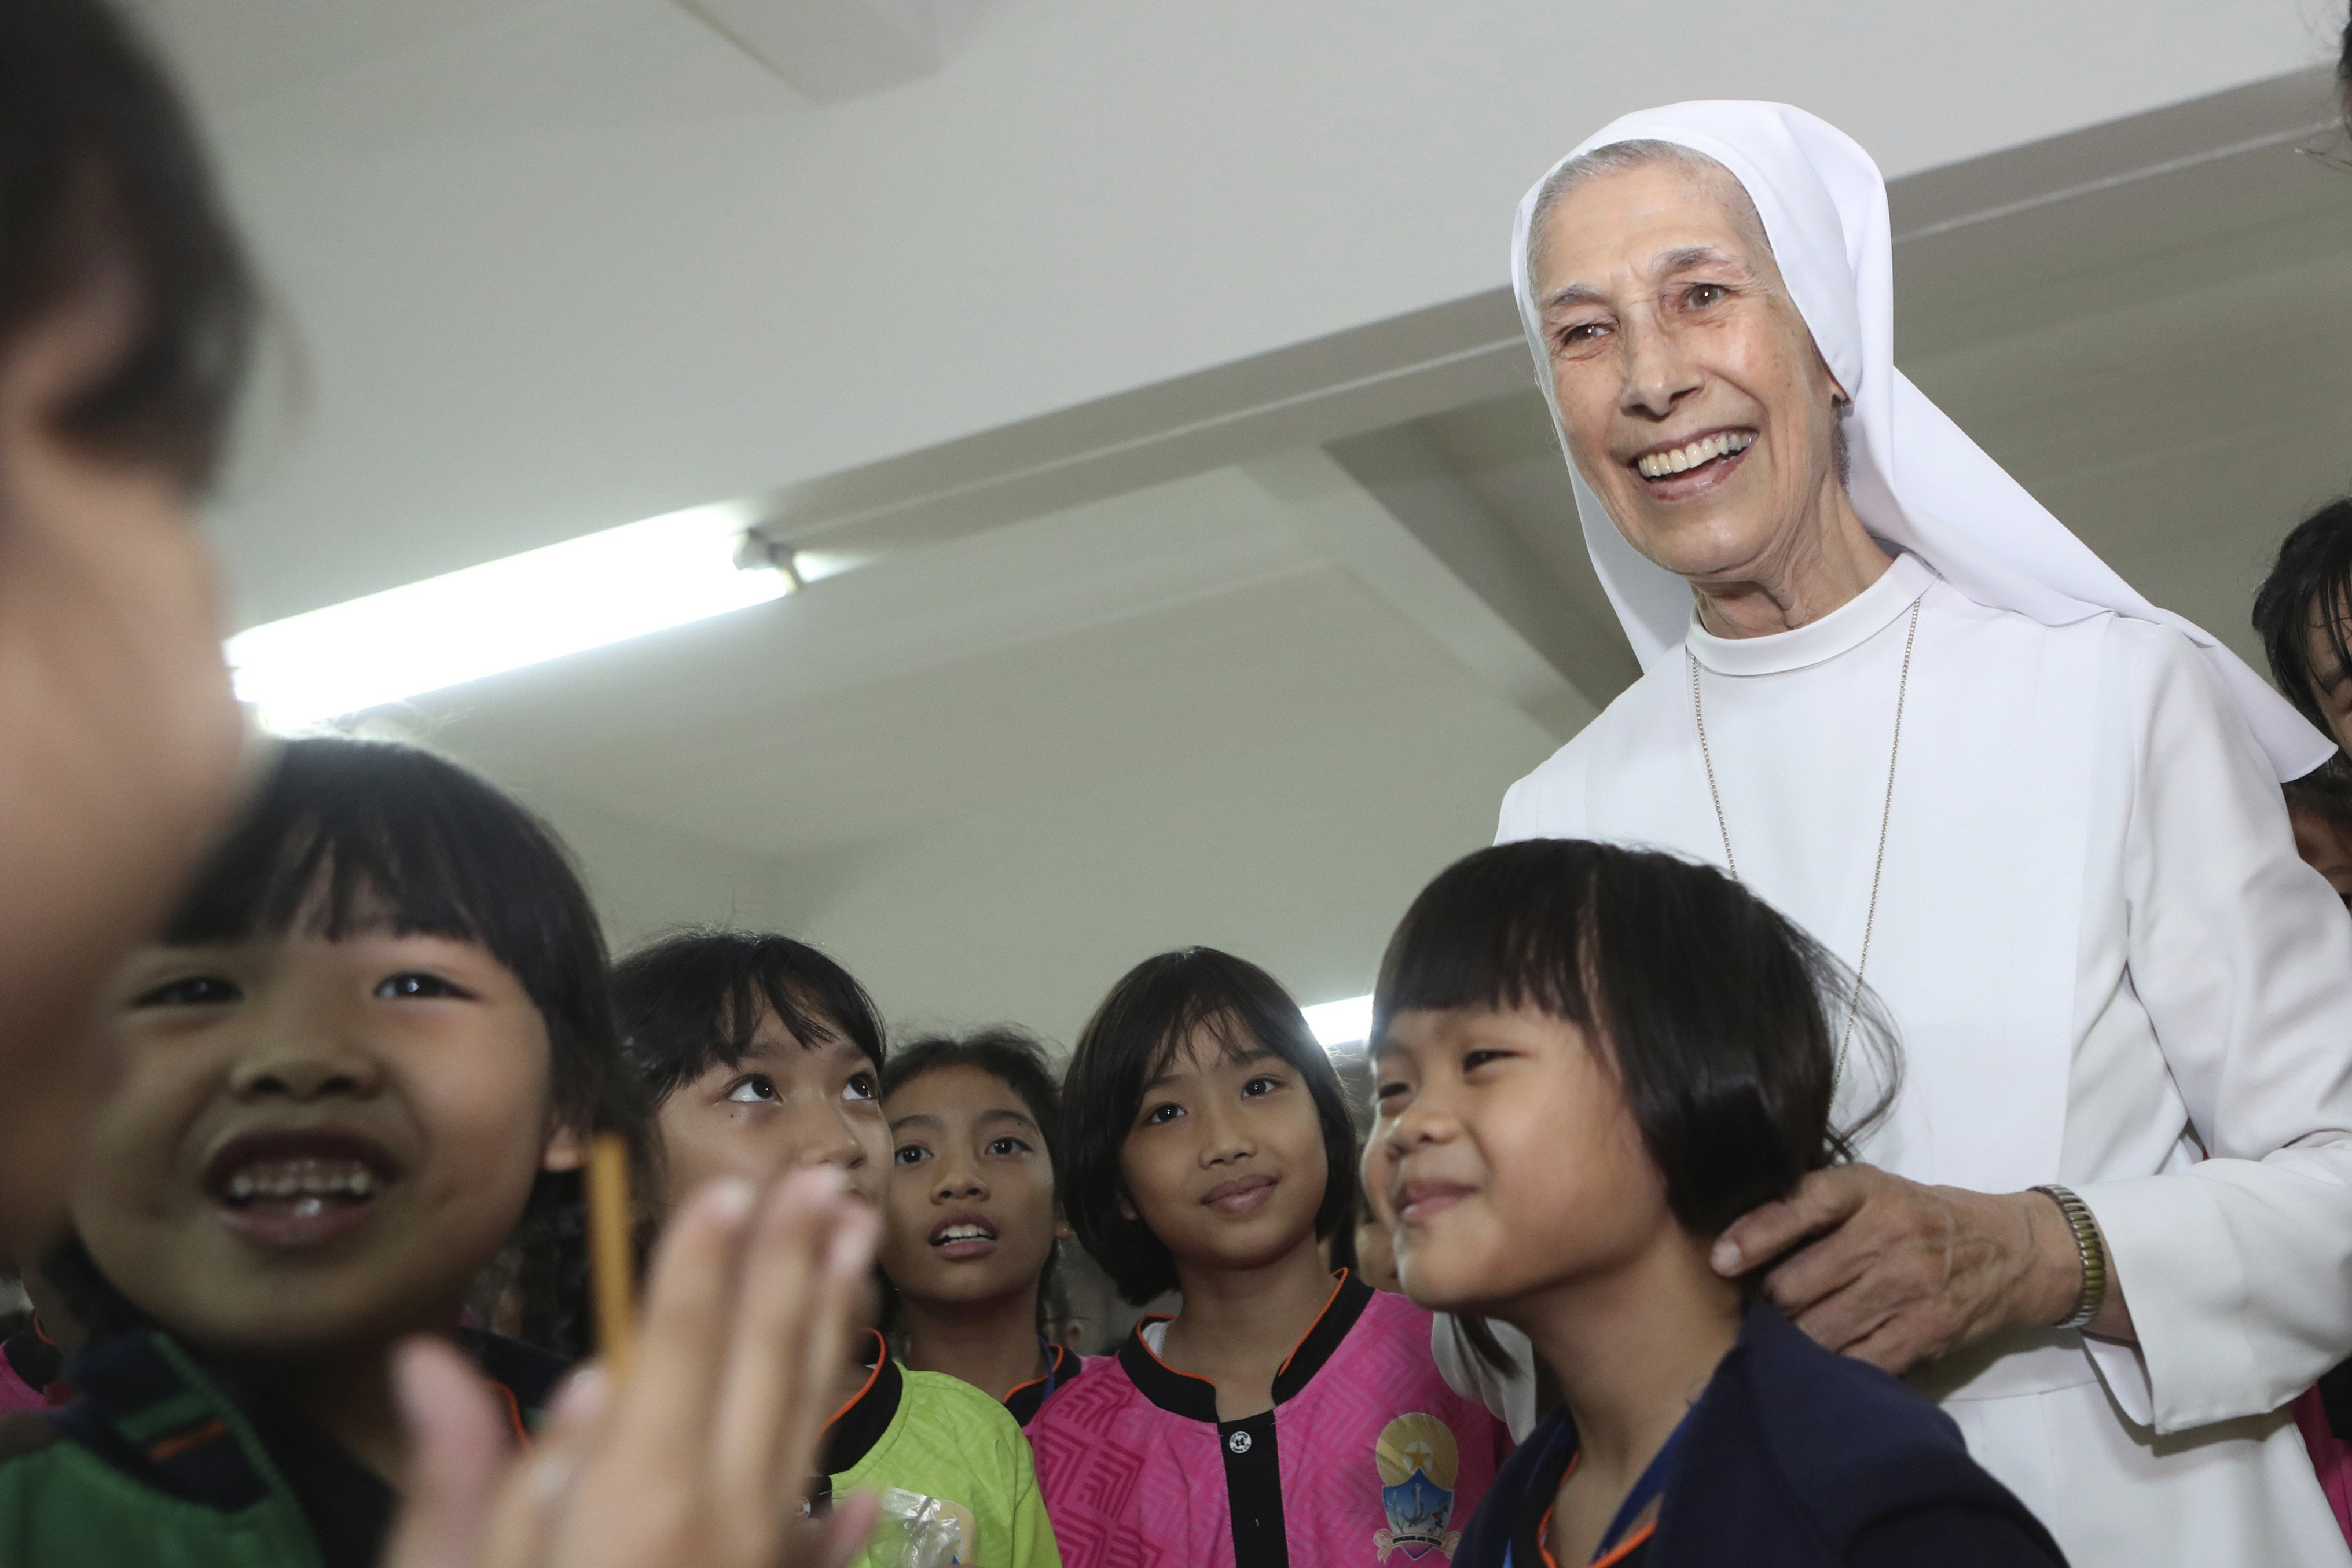 Catholics in Thailand are excited to see Pope Francis, none more than his second cousin